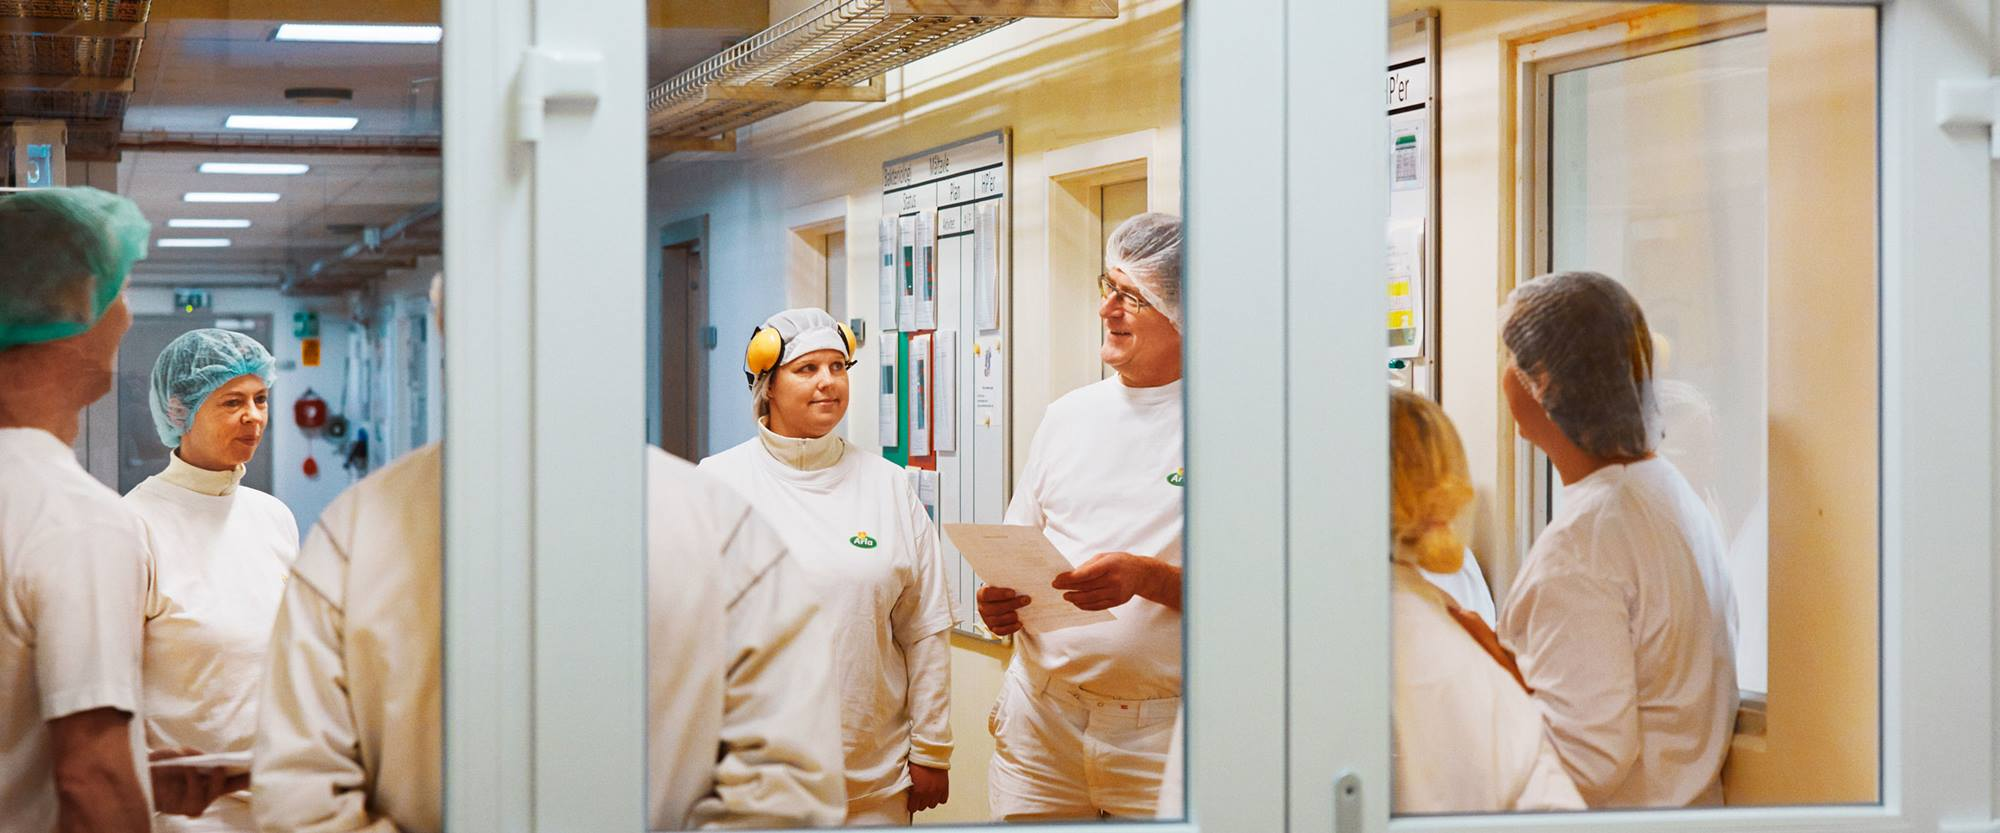 A career at Arla Foods Ingredients is a career within a company committed to transforming a natural raw material into innovative food ingredients